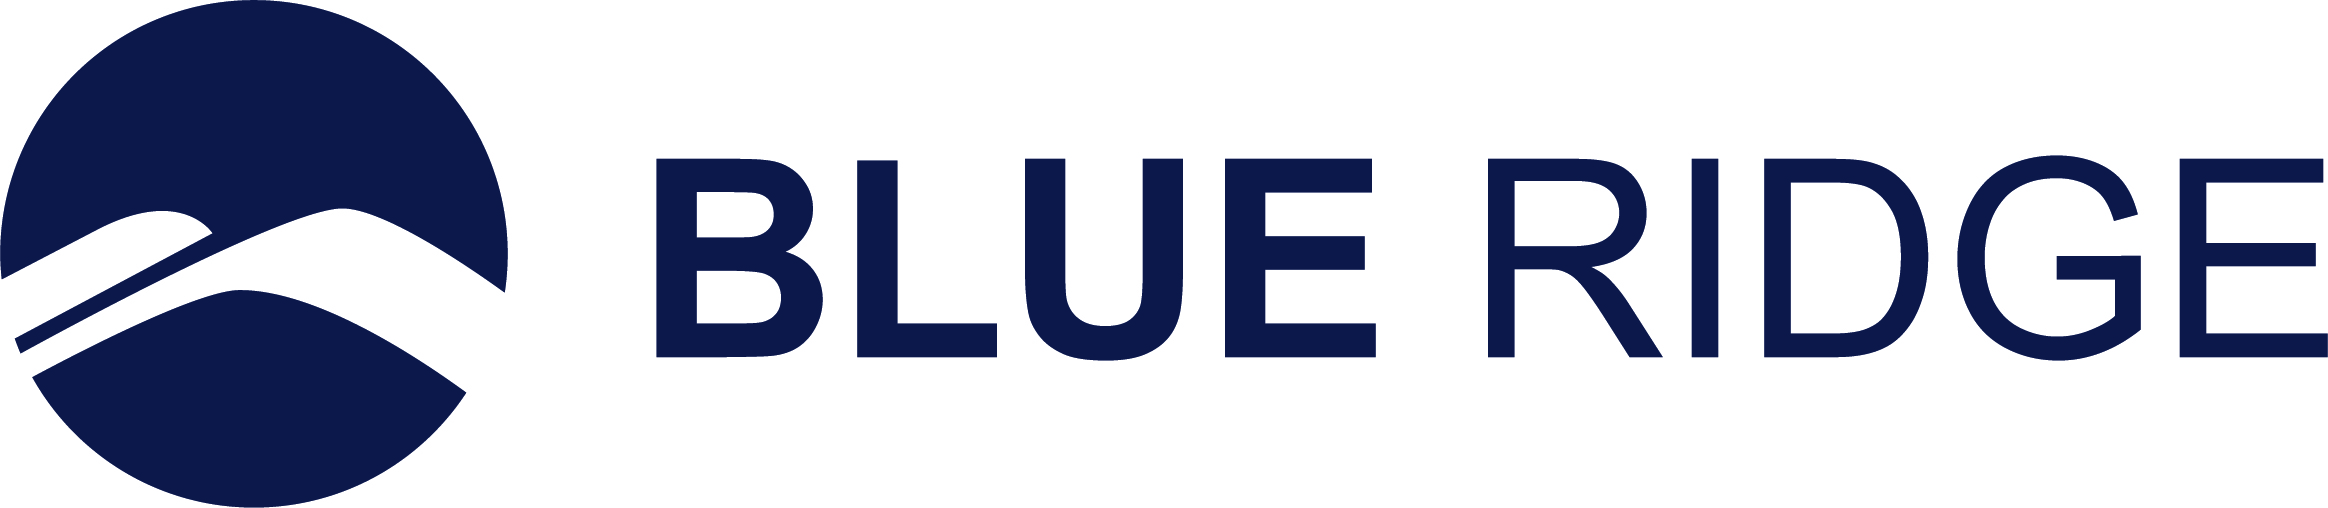 Ed Rusch, CMO at Blue Ridge Shares Importance of Great Marketing in Forbes 1